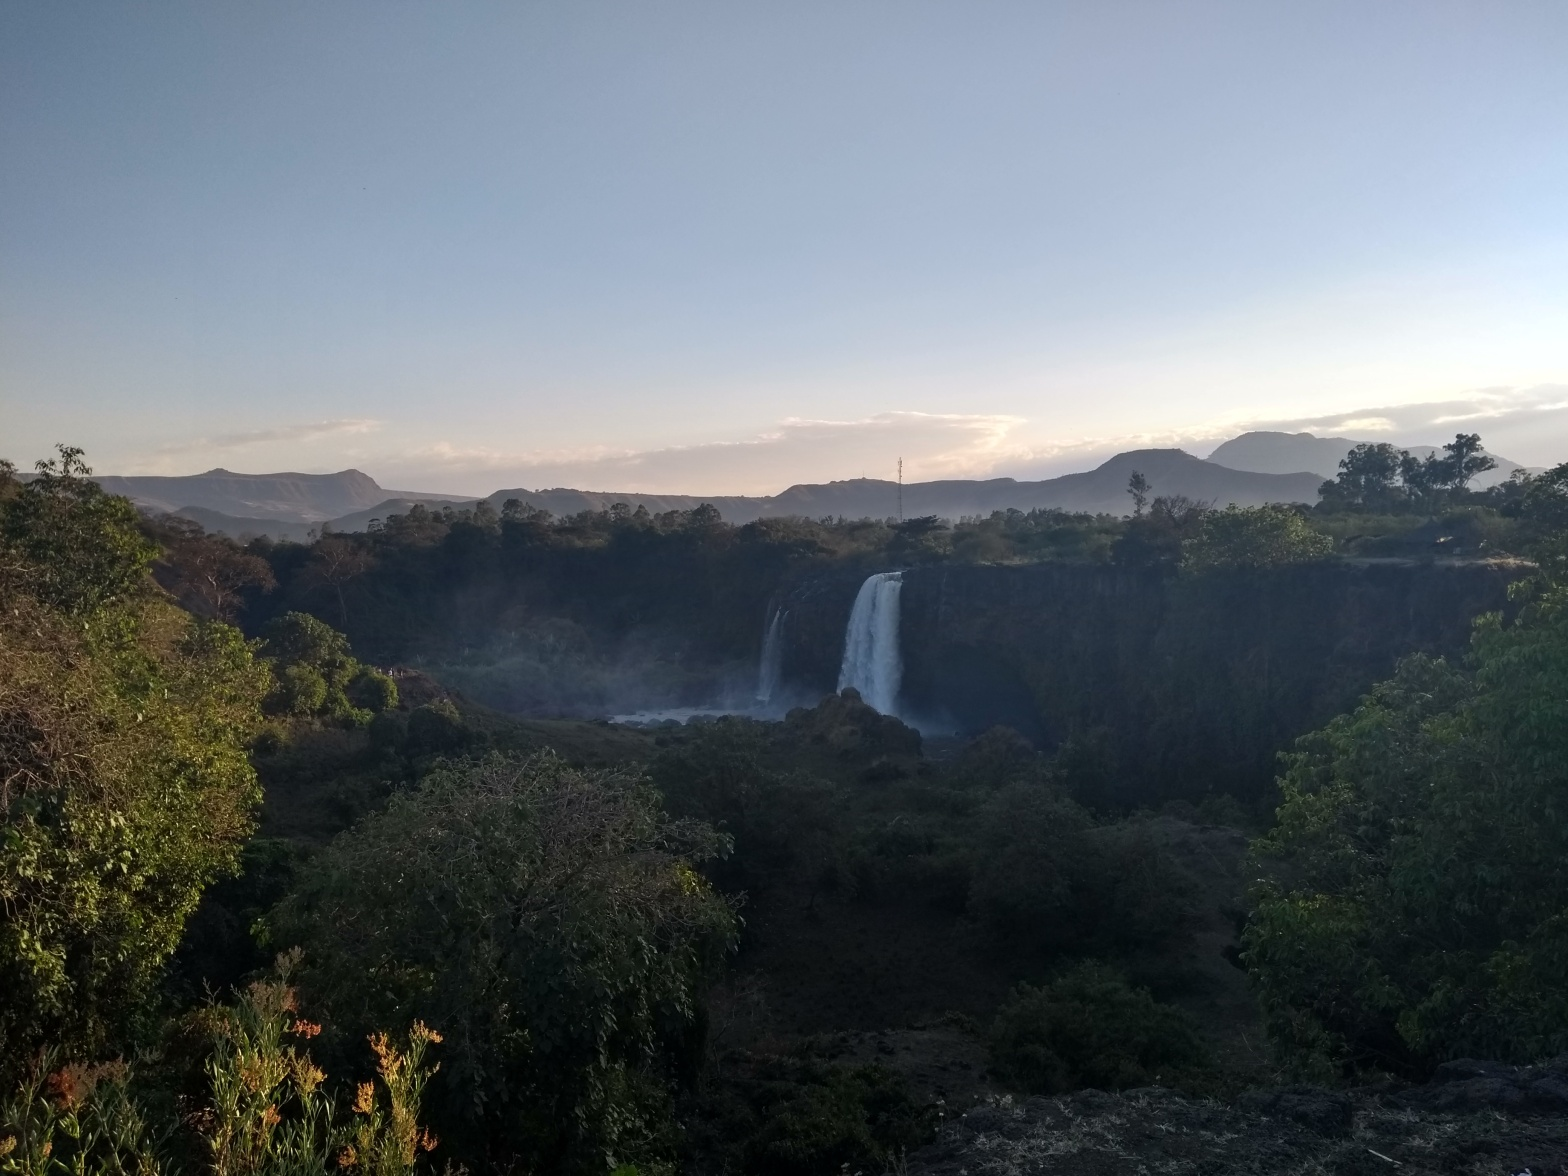 blue nile falls in a lush valley